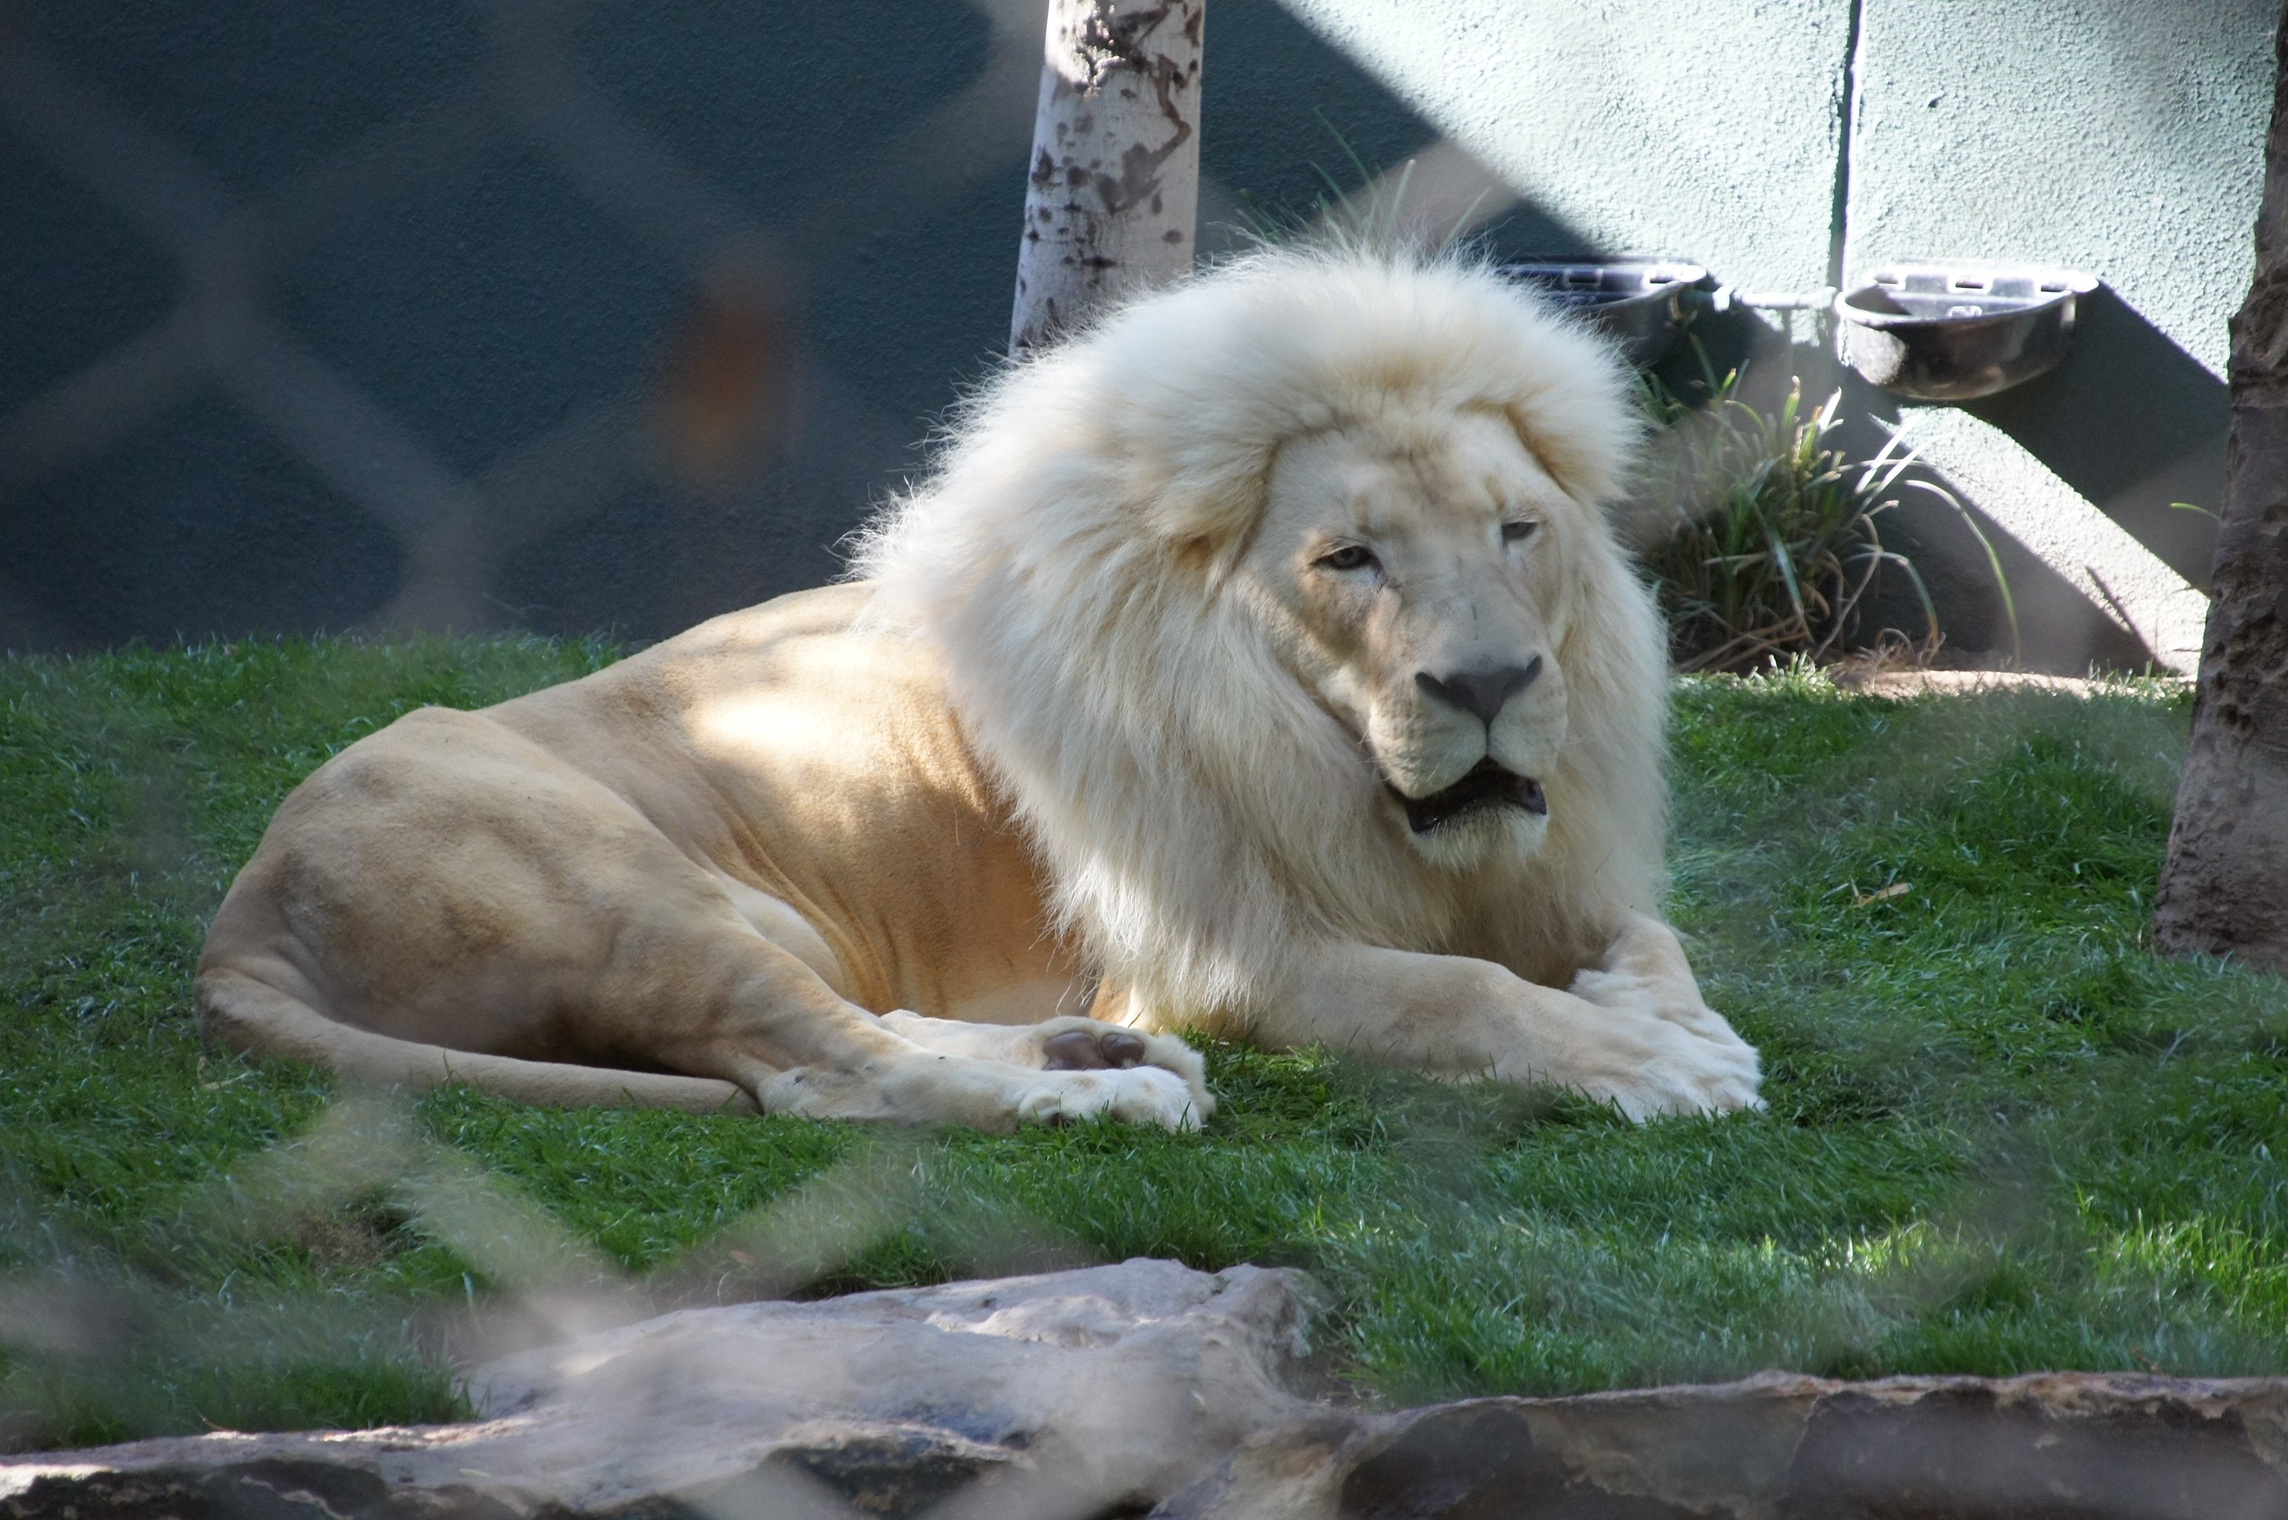 white lion siegfried roys secret garden dolphin habitat - Siegfried And Roy Secret Garden